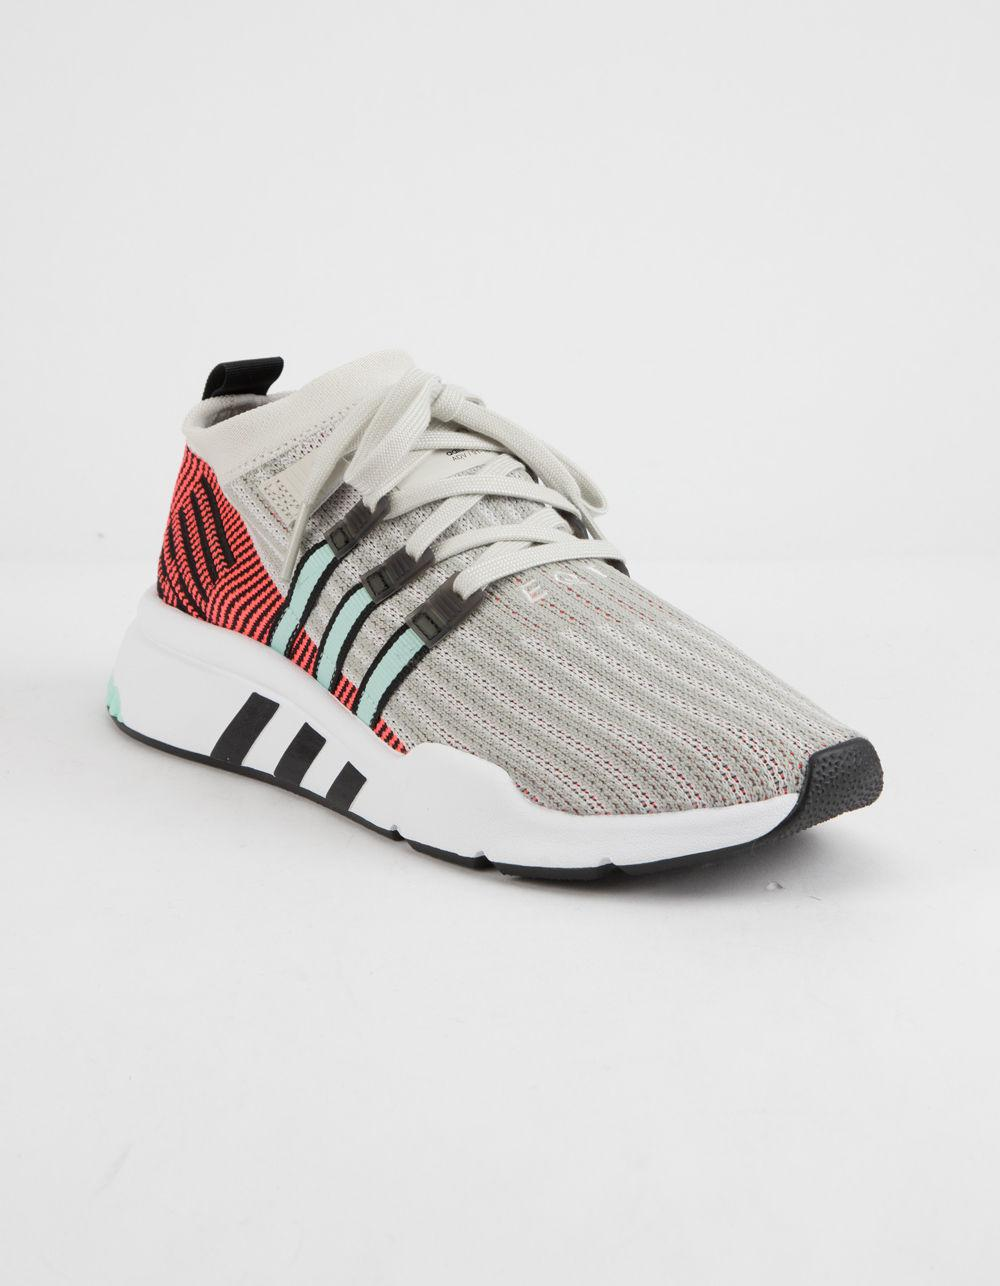 promo code ad991 0f4b3 Lyst - Adidas Eqt Support Mid Adv Primeknit Shoes in Gray